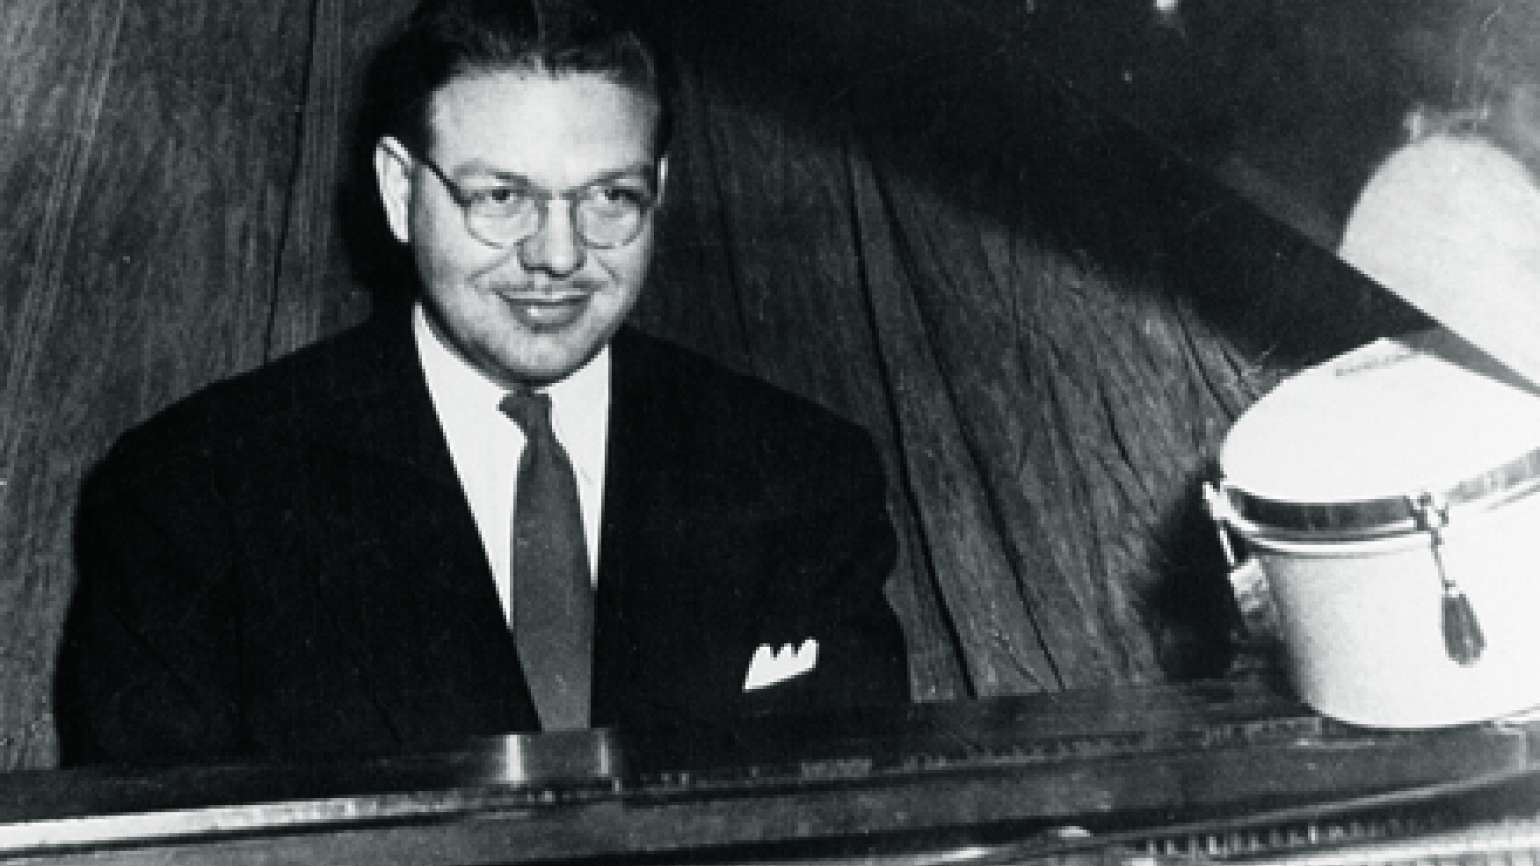 John Duckworth at the piano, ca. 1960